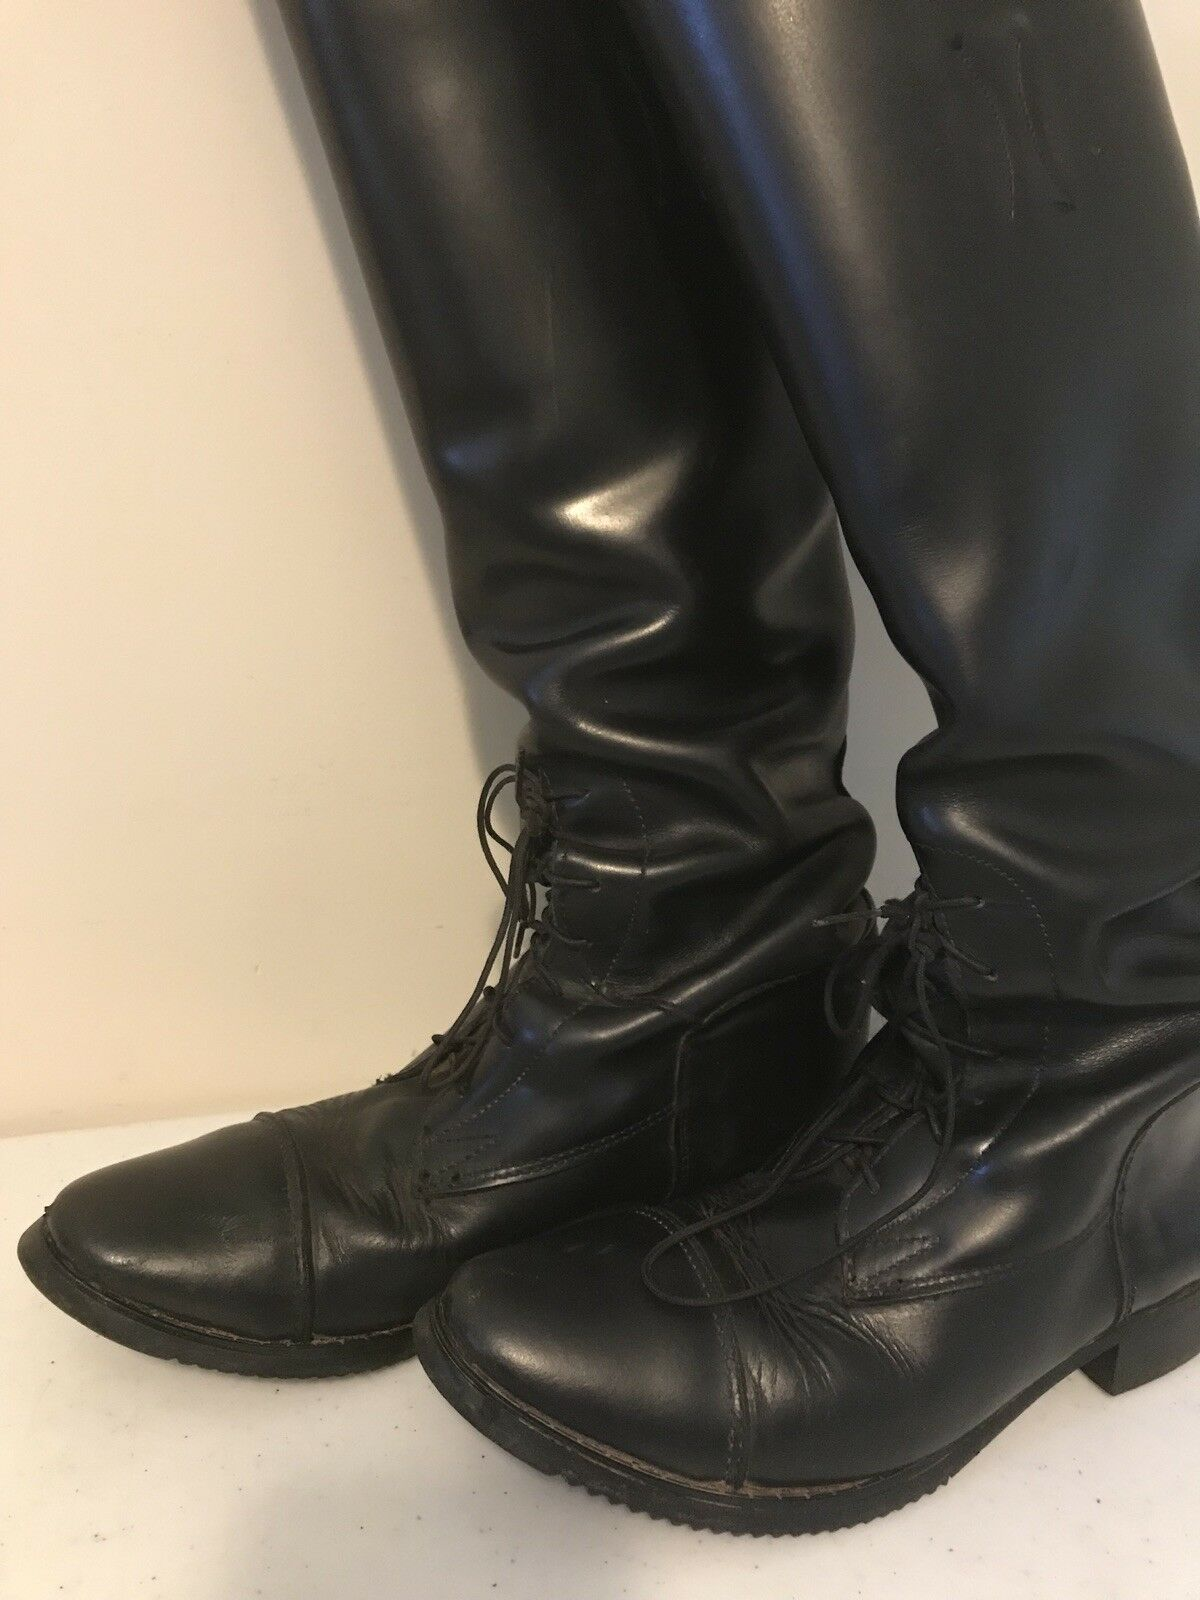 DEVONAIRE donna LEATHER Lace Up FIELD RIDING stivali Dimensione 7.5S L'Cord